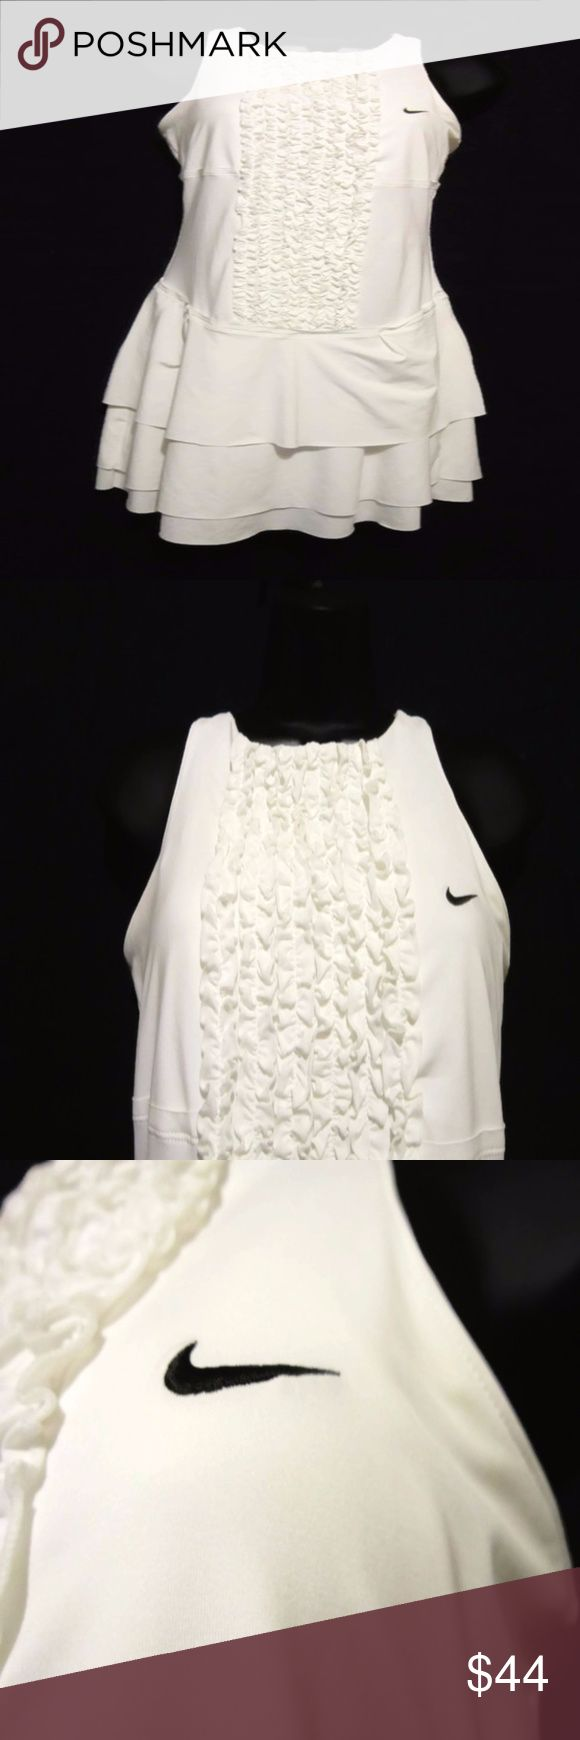 "Nike Wimbledon Grass Court Ruffled Tiered Dress Feminine Athletic Apparel  Tiered Hem Ruffle Front Nike Logo  Racerback  White   Full 14% Spandex for Comfort Stretch  High Quality Nike 348334-100  Womens Size XS Measures Armpit to Armpit 15"" Length Shoulder to Hem 32""  Excellent Pre-Owned Condition  Cute and Feminine Athletic Apparel!!  Smoke Free Environment Nike Dresses"